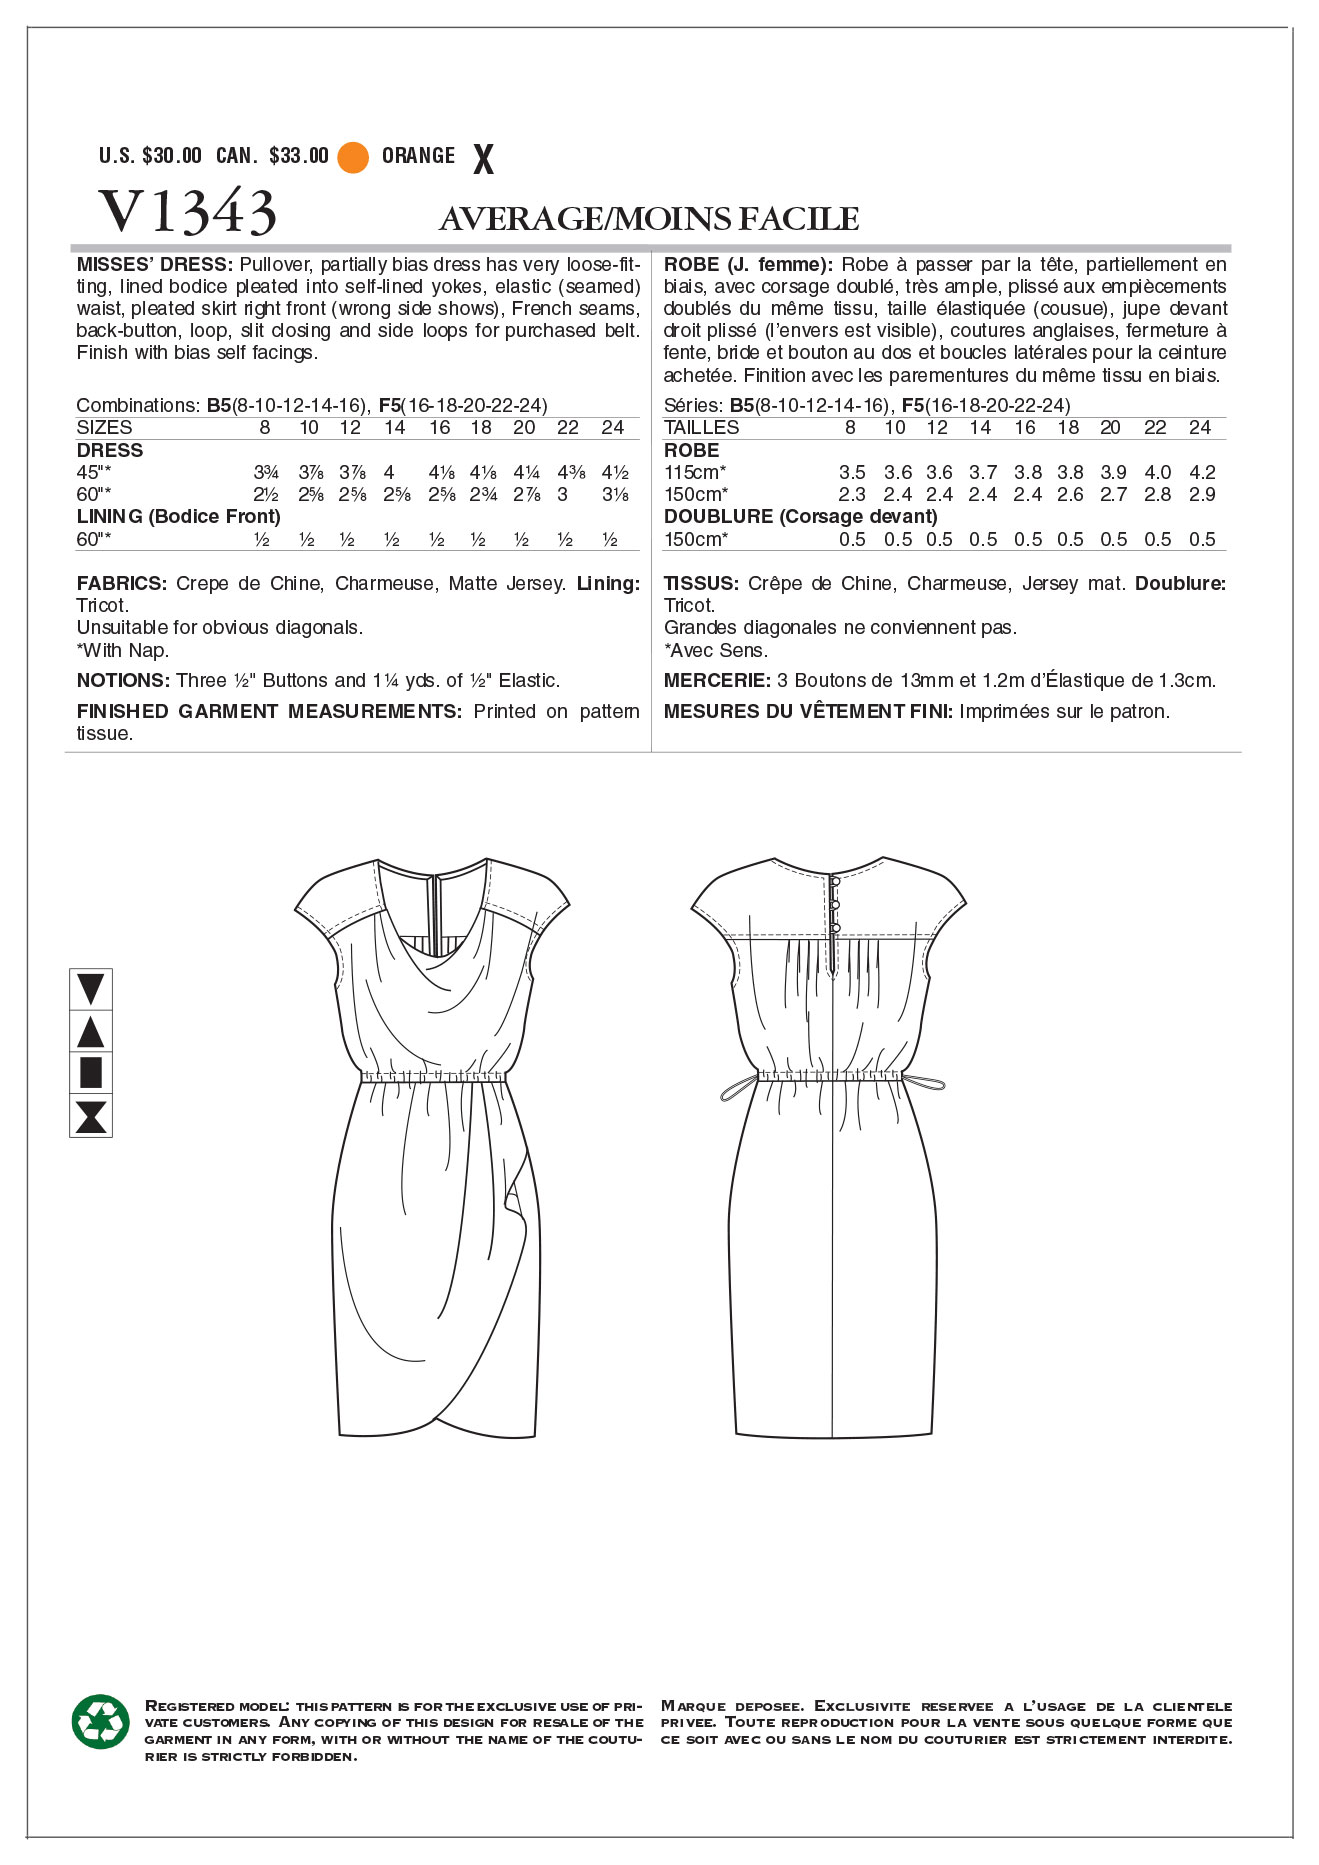 Vogue Patterns Misses Dress-V1343